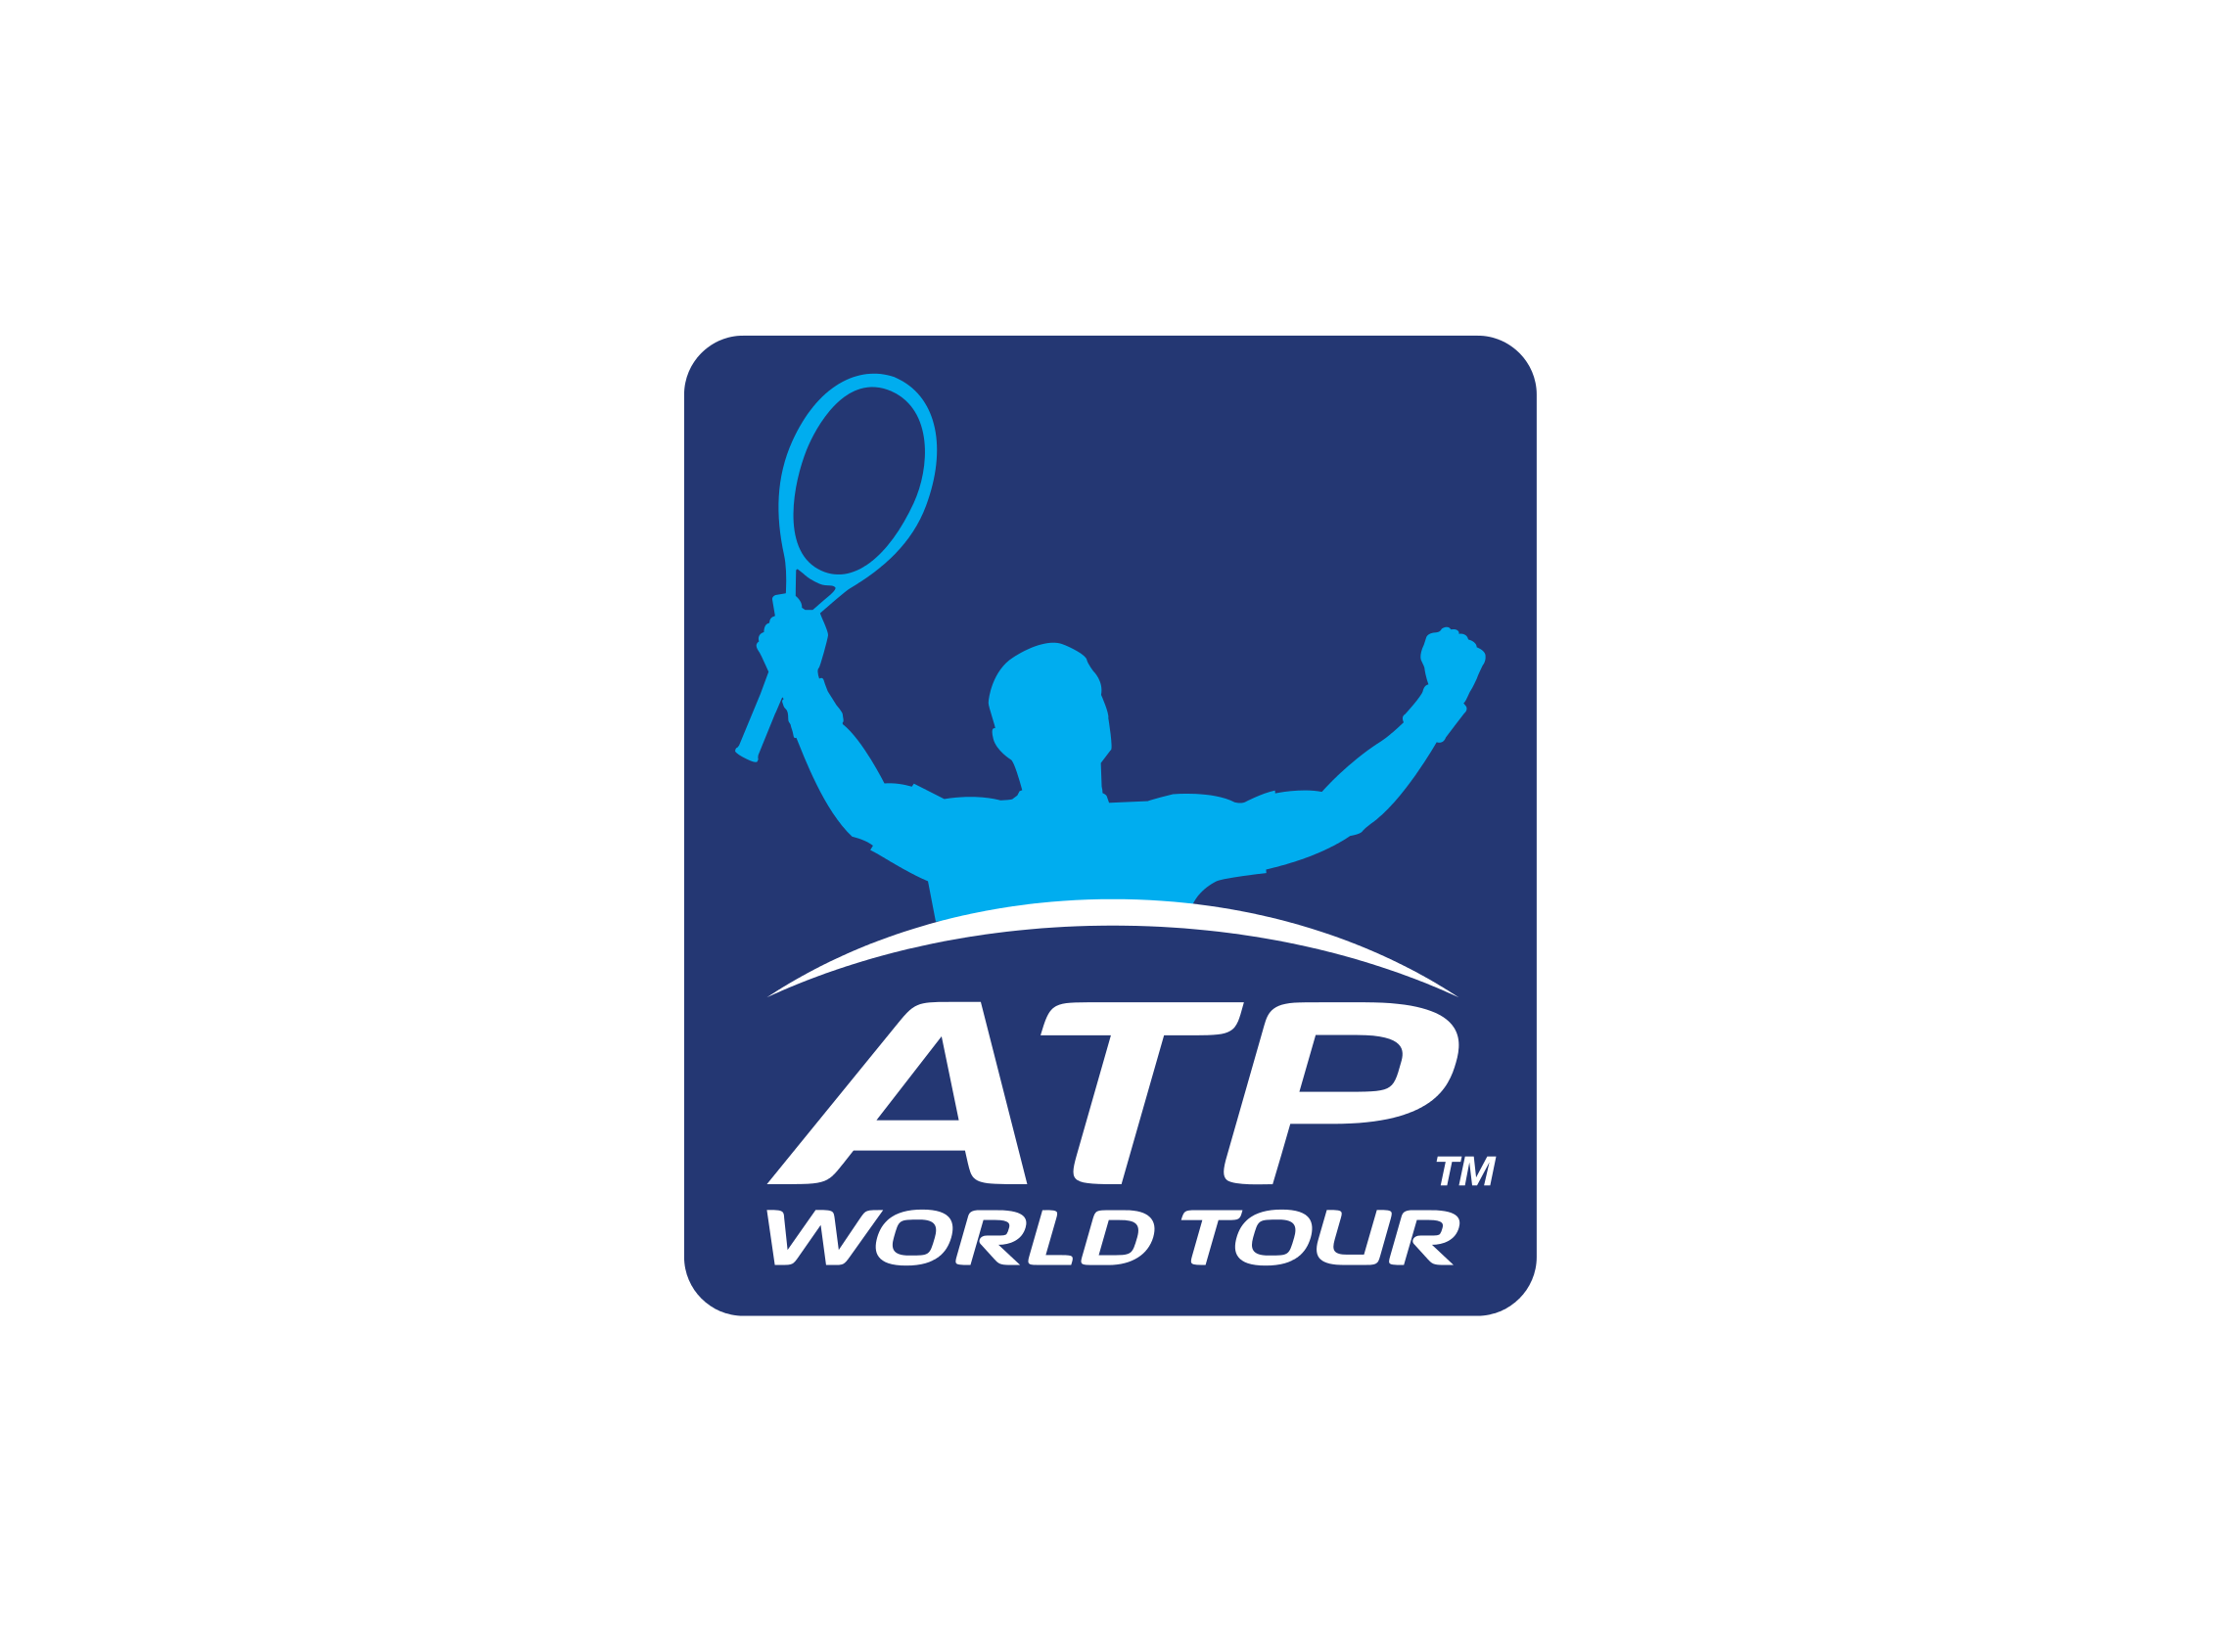 atp-world-tour-logo.png